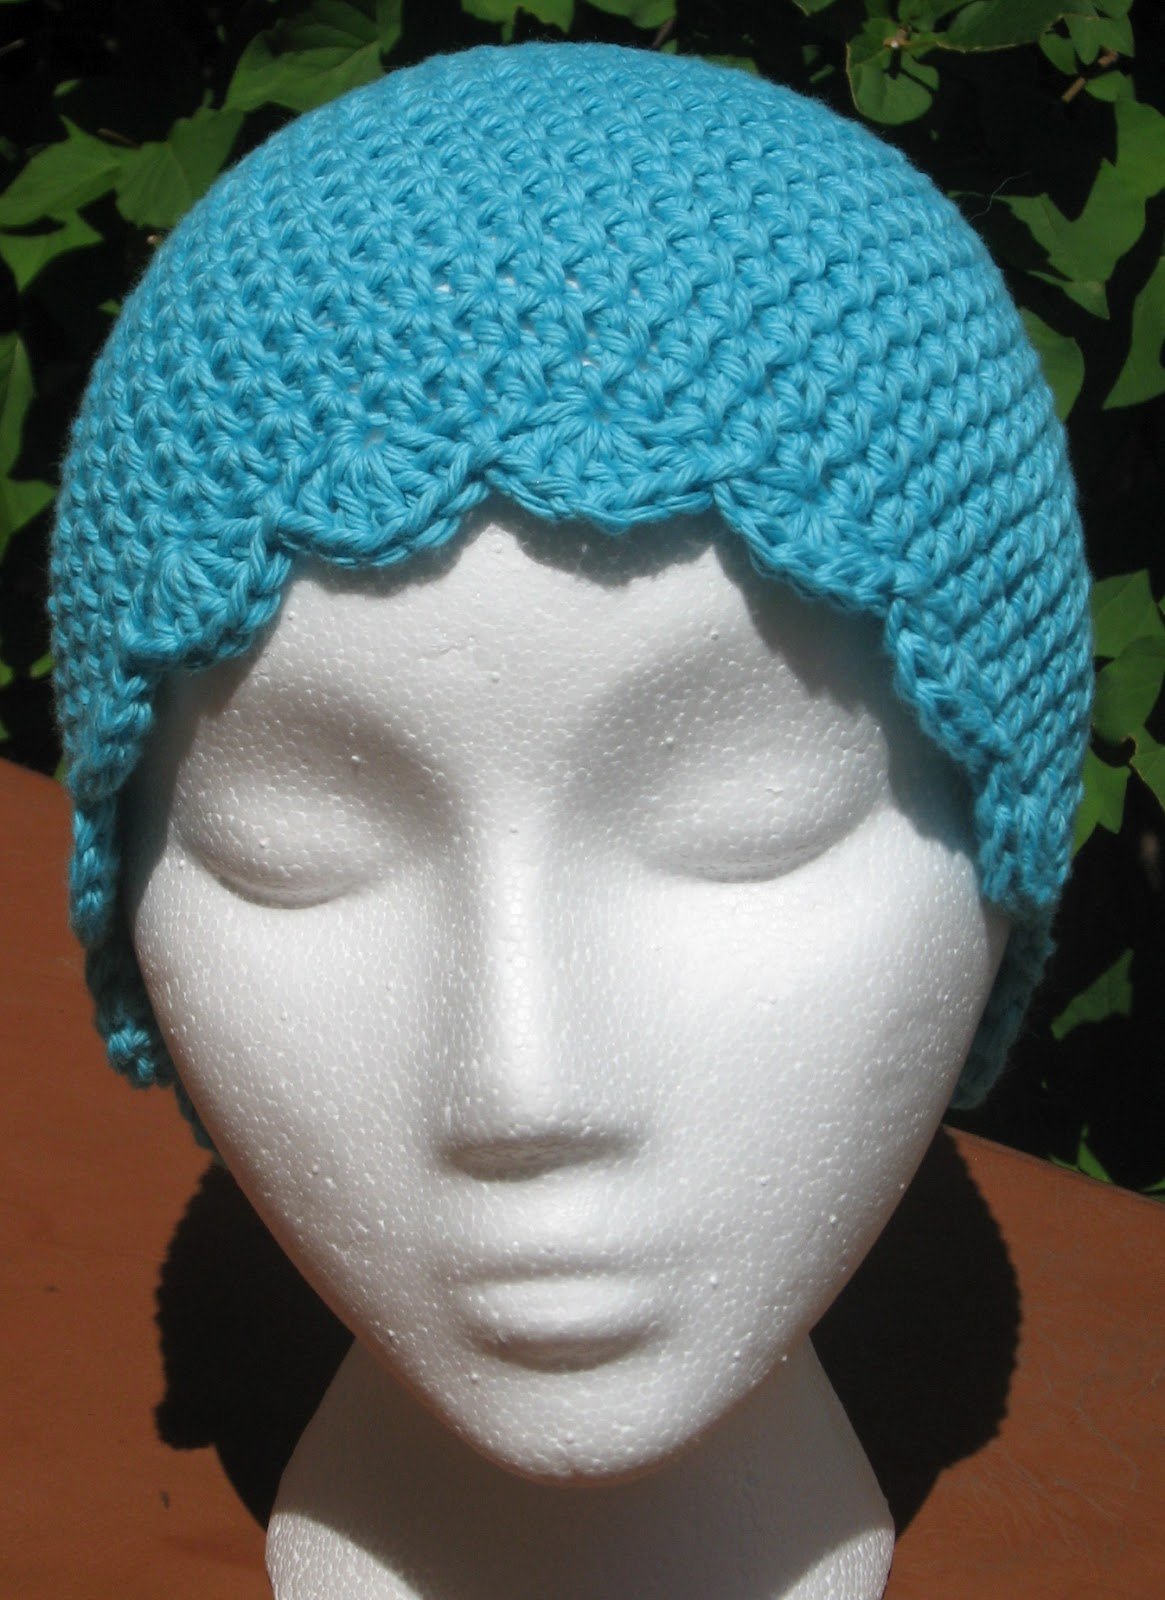 Crochet Projects Crochet Chemo Sleep Cap